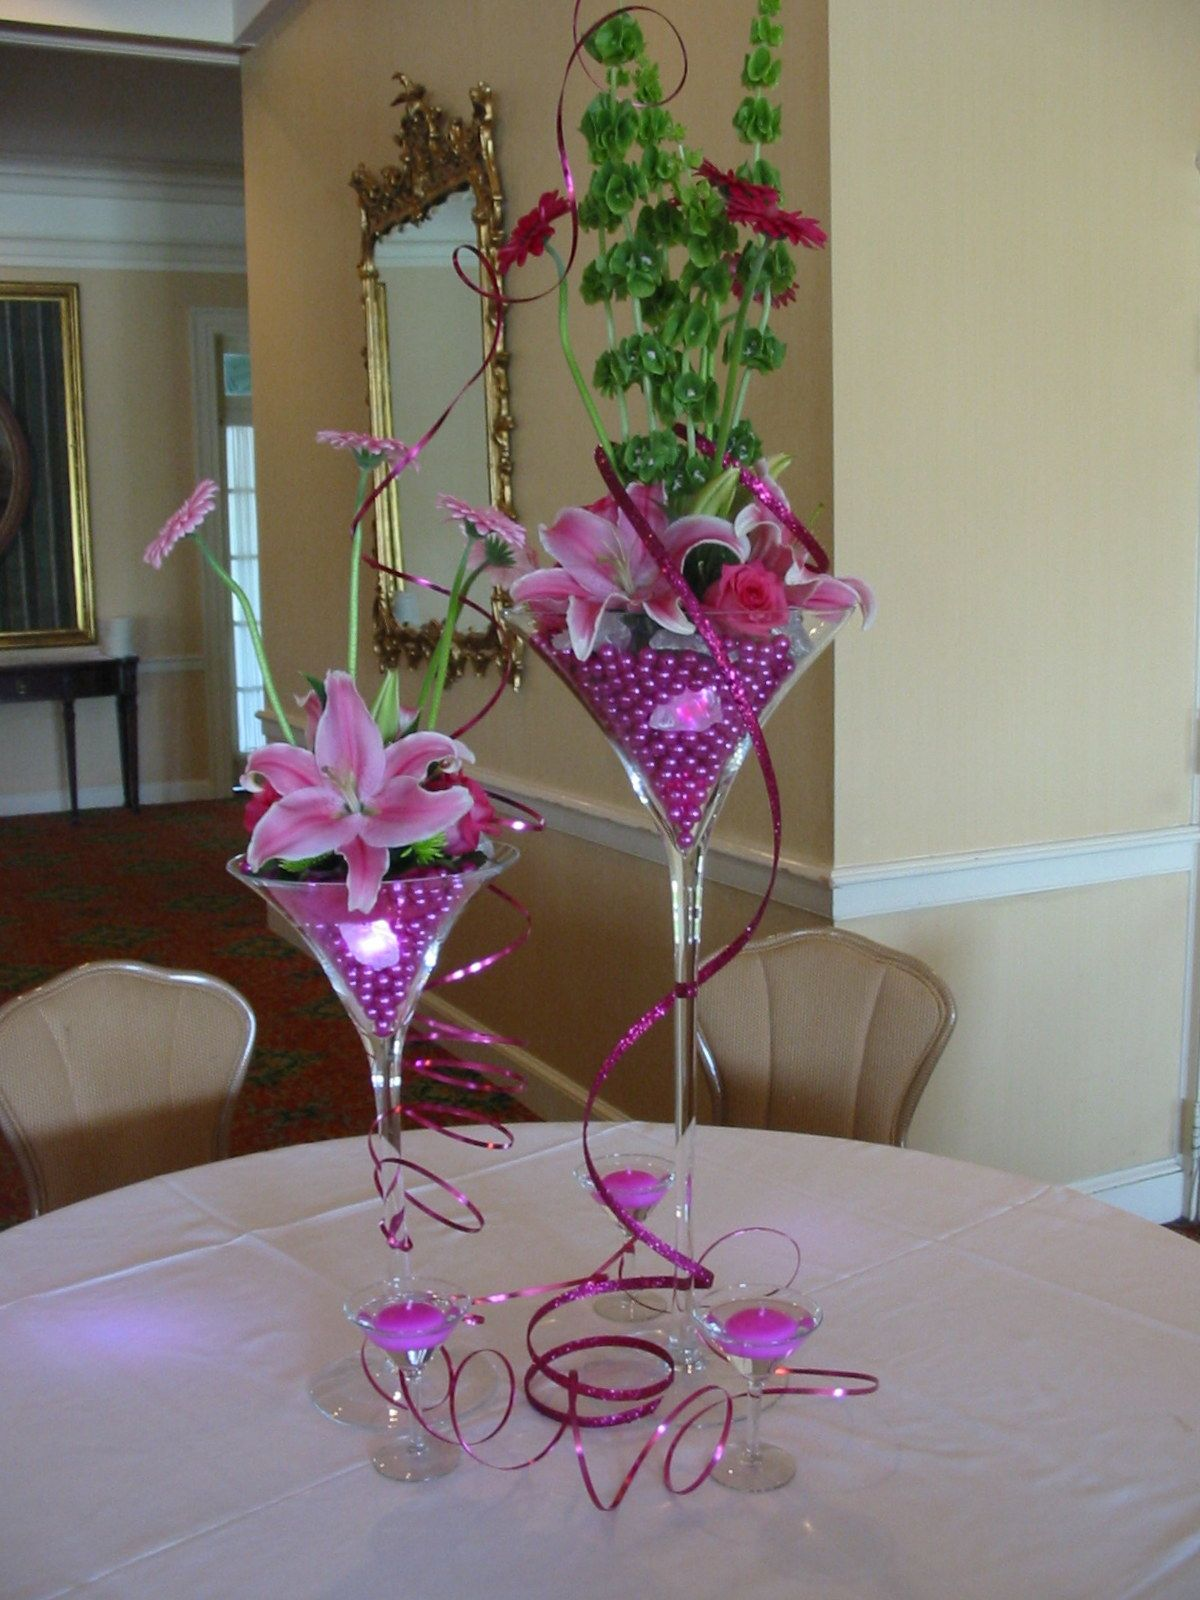 Centerpiece using martini glasses filled with hot pink pearls hot pink and lime green flowers in oversized martini glasses filled with pearls accented with decorative wire with pink flowers reviewsmspy